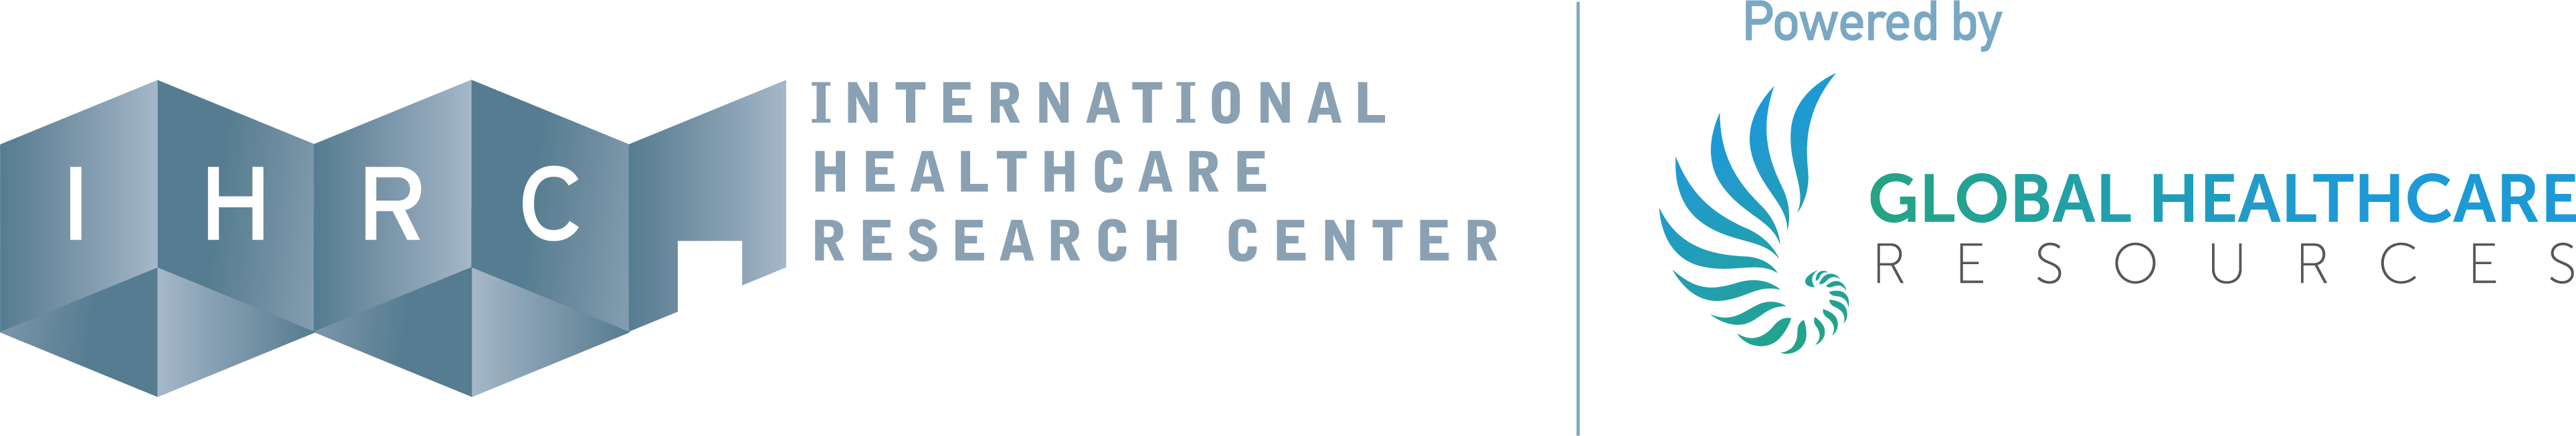 International Healthcare Research Center